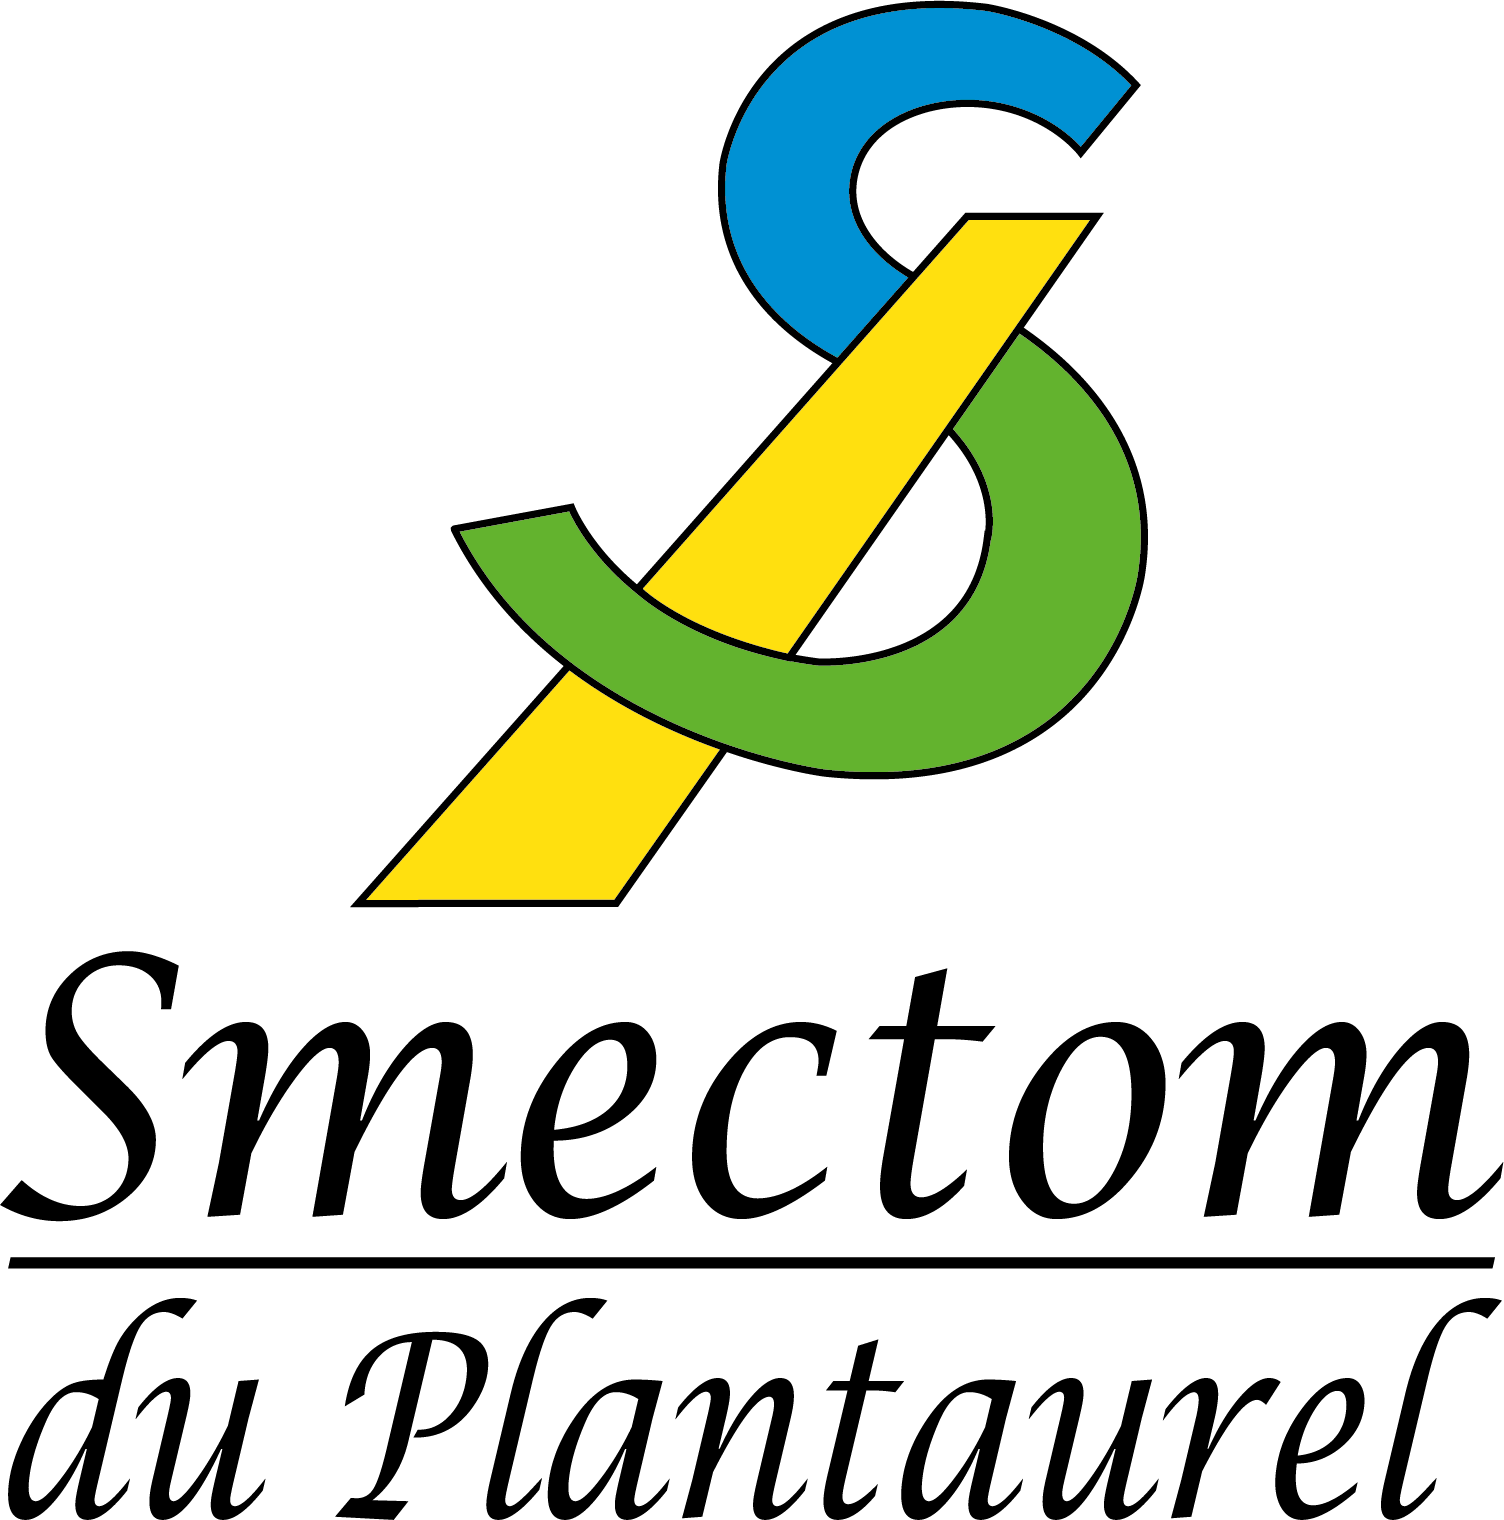 logo_smectom_2017_vertical_3_couleurs